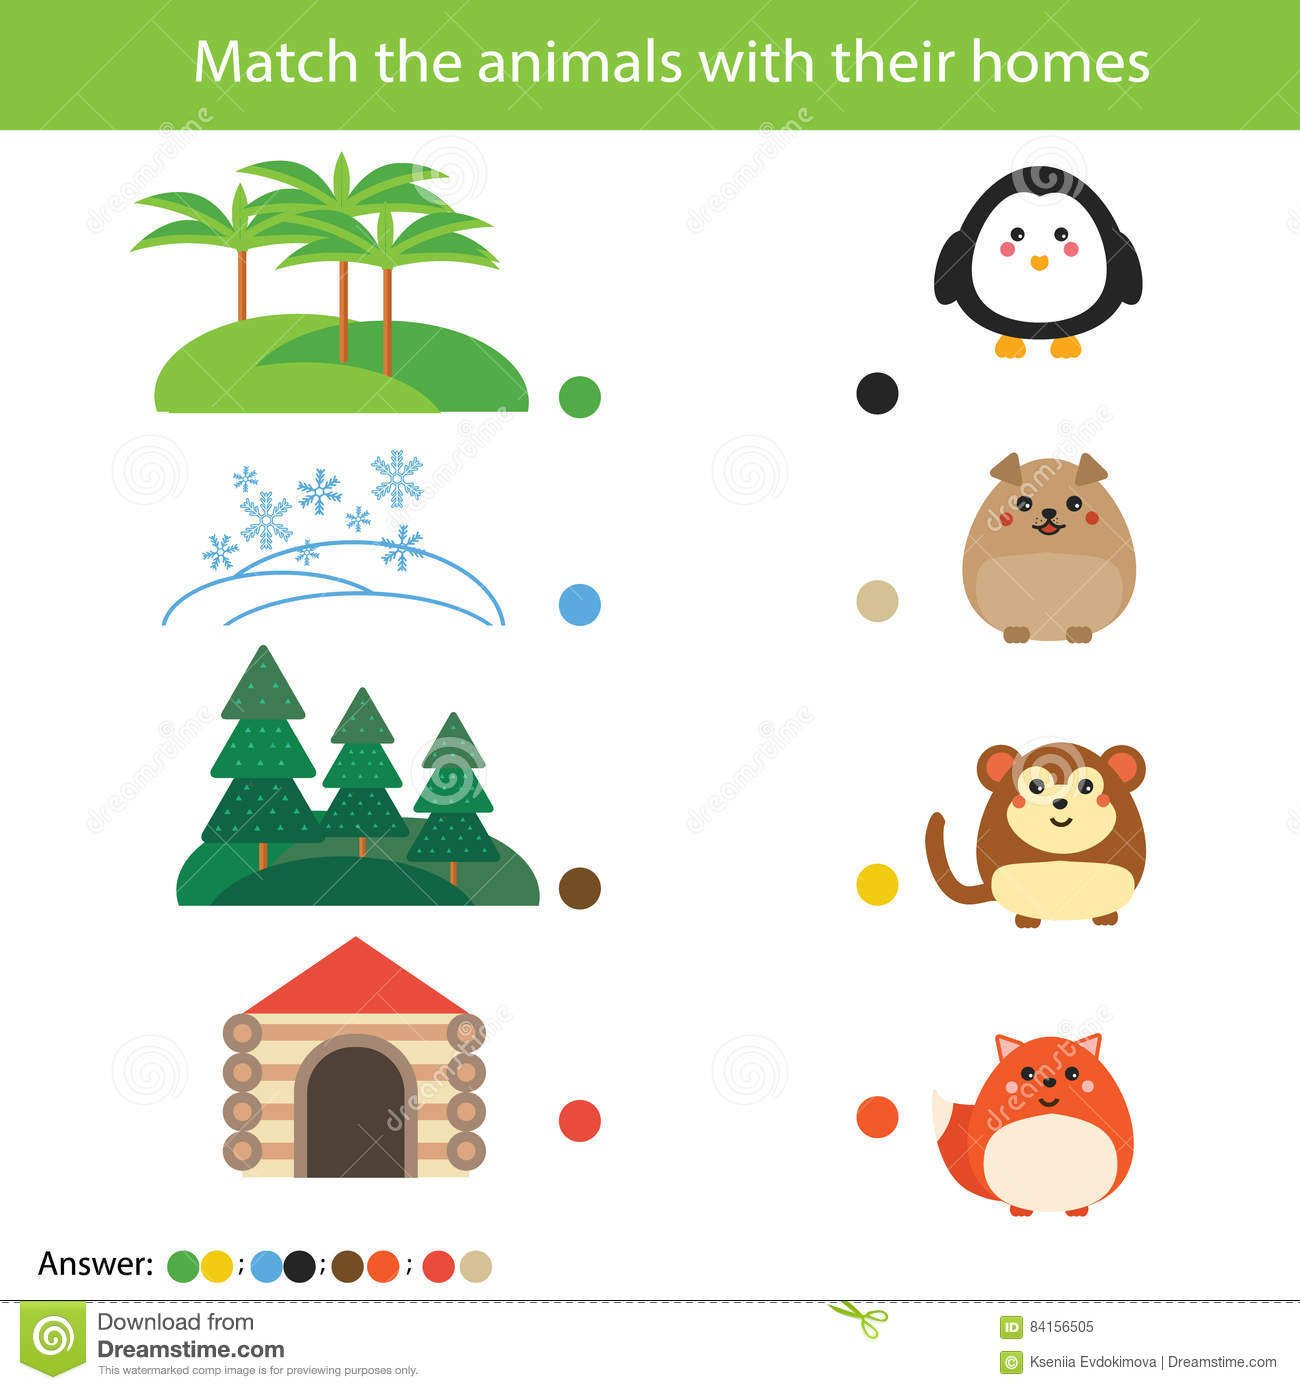 Animal Homes Worksheet Matching Children Education Game Match Animals with their